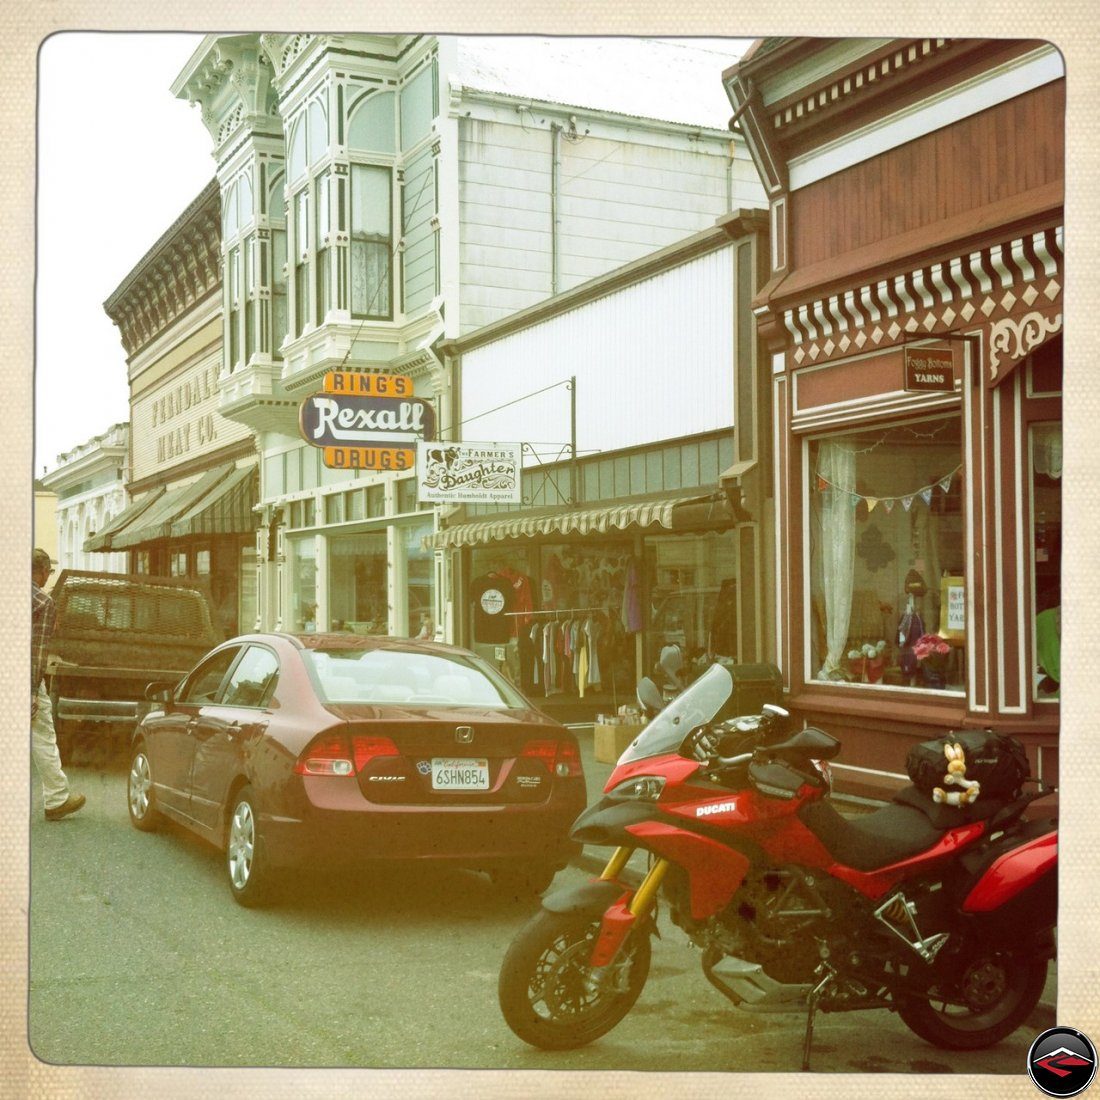 a Ducati Multistrada 1200 parked on historic main street in Ferndale, California, and a sign for Rings Rexall Drugs and Farmers Daughter